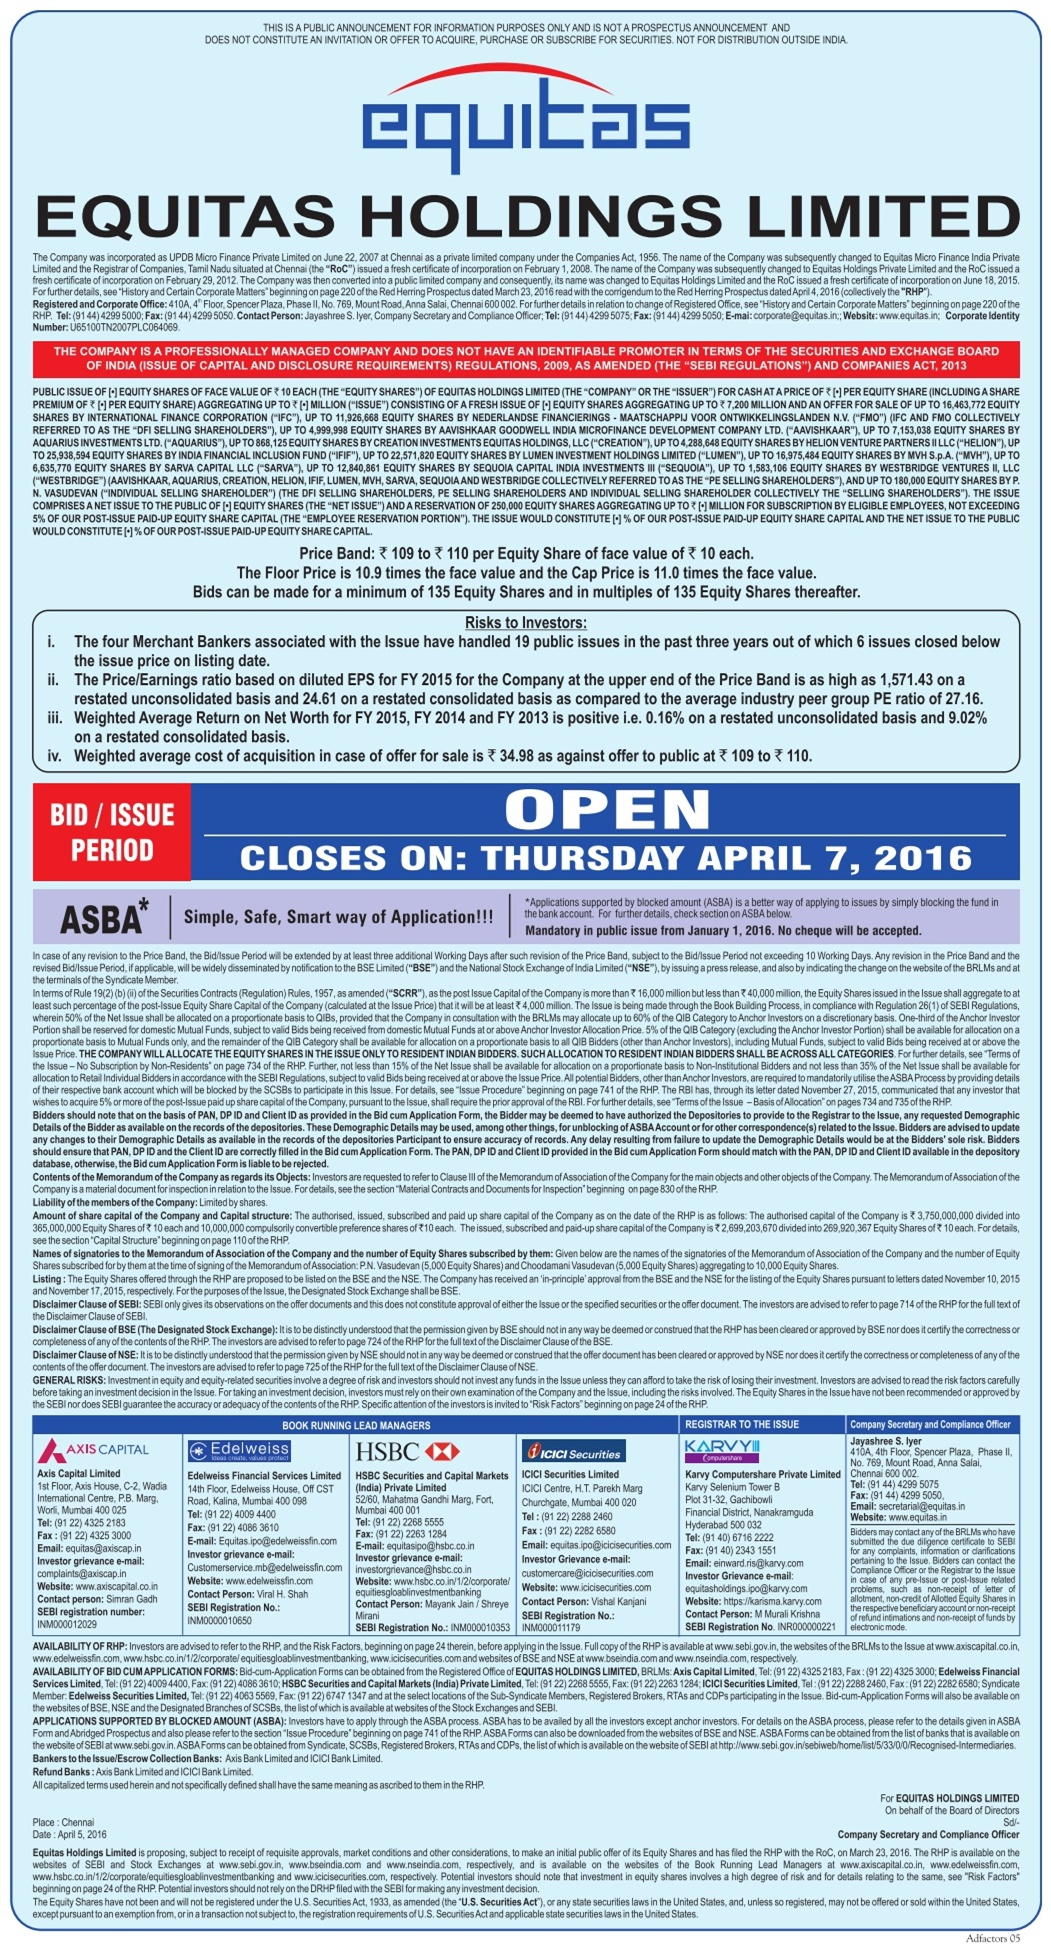 Equitas Holdings Limited Advertisement